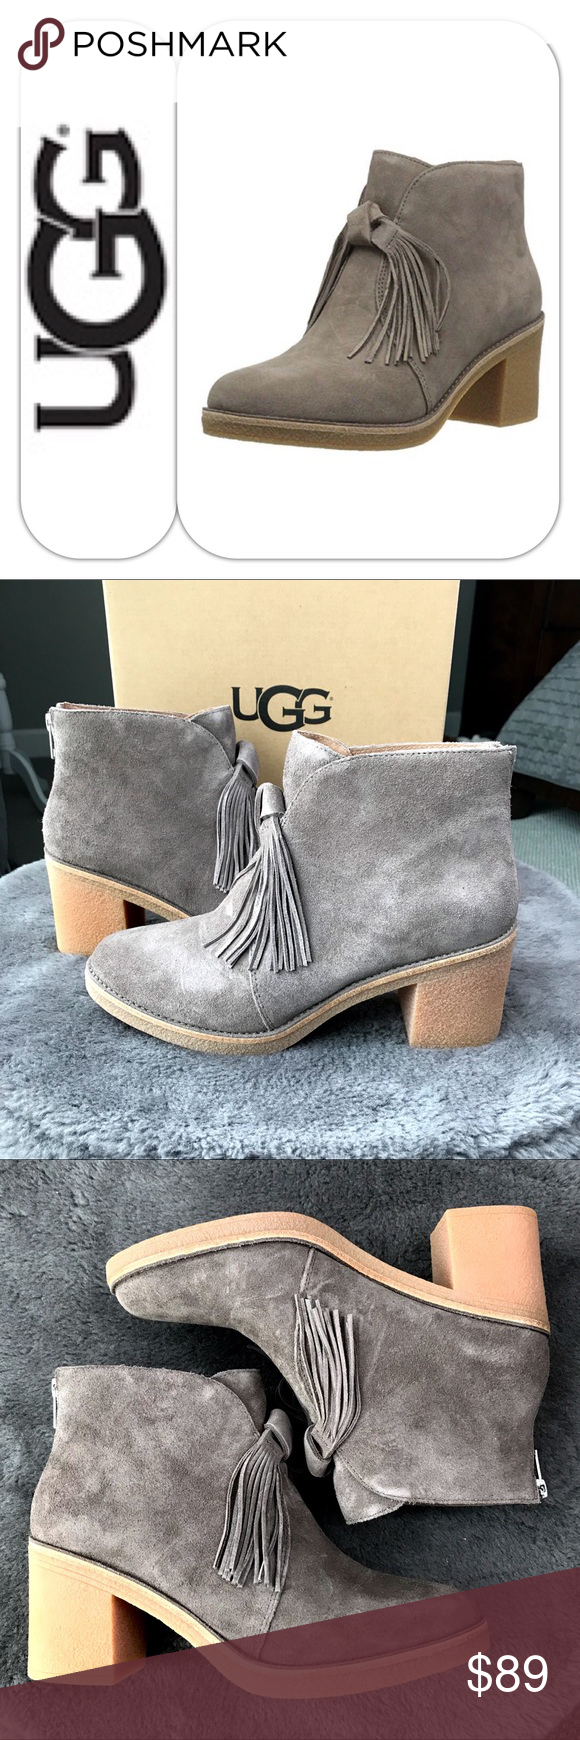 UGG Corin Fringe Bootie Super cute and comfy bootie with fringe from UGG. These soft suede ankle boots will pair perfectly with a chunky sweater and your favorite skinny jeans. ½